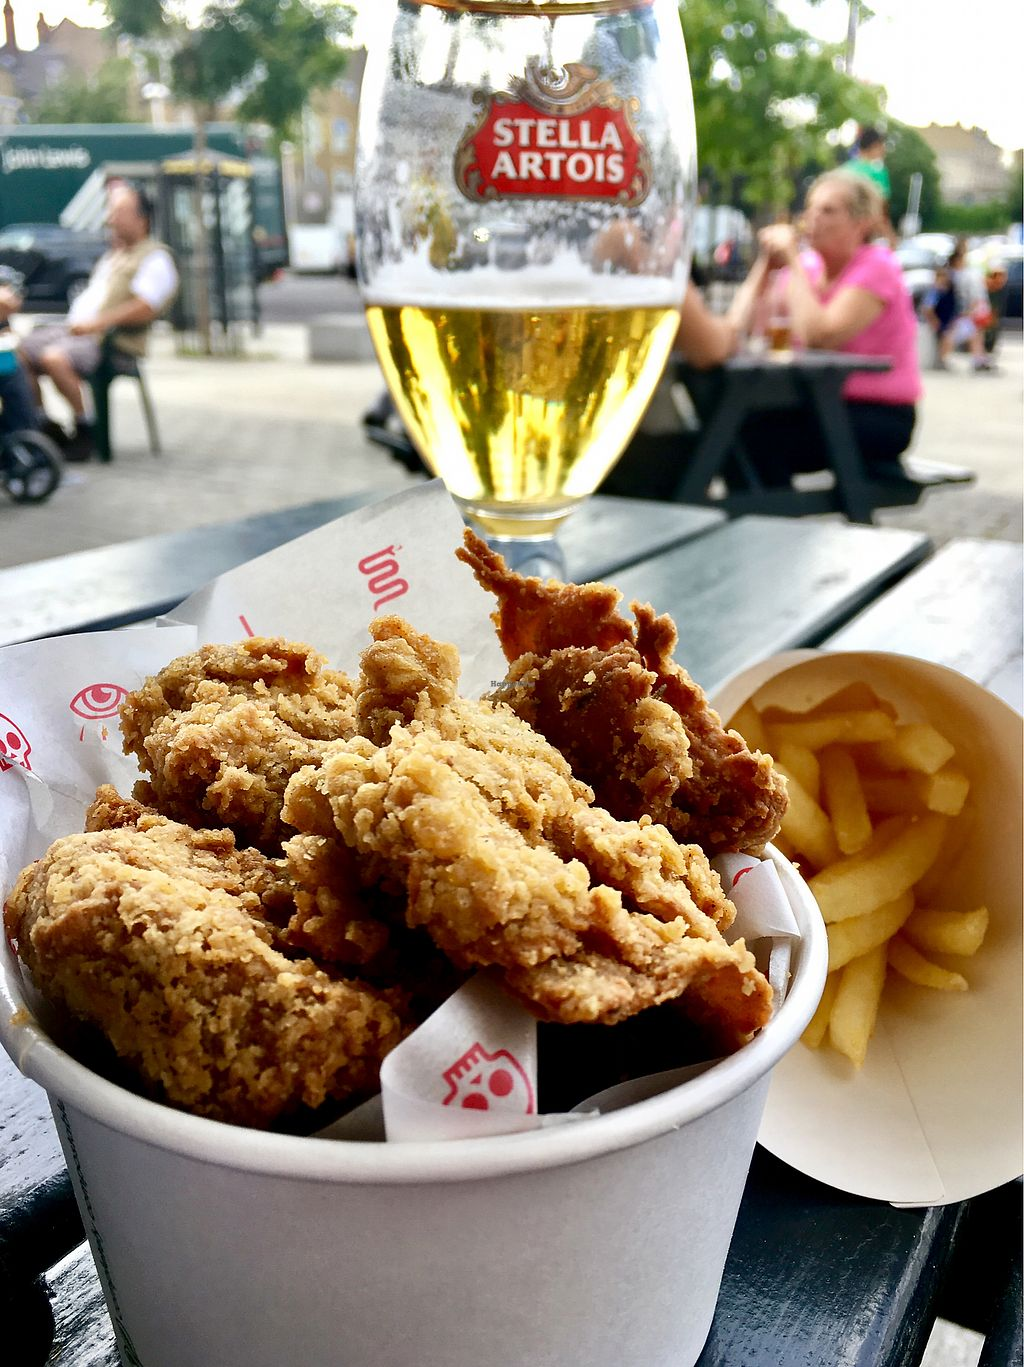 """Photo of Temple of Hackney  by <a href=""""/members/profile/milos99"""">milos99</a> <br/>popcorn """"chicken"""" and chips ... the Colonel should be afraid!!  <br/> July 13, 2017  - <a href='/contact/abuse/image/77702/279906'>Report</a>"""